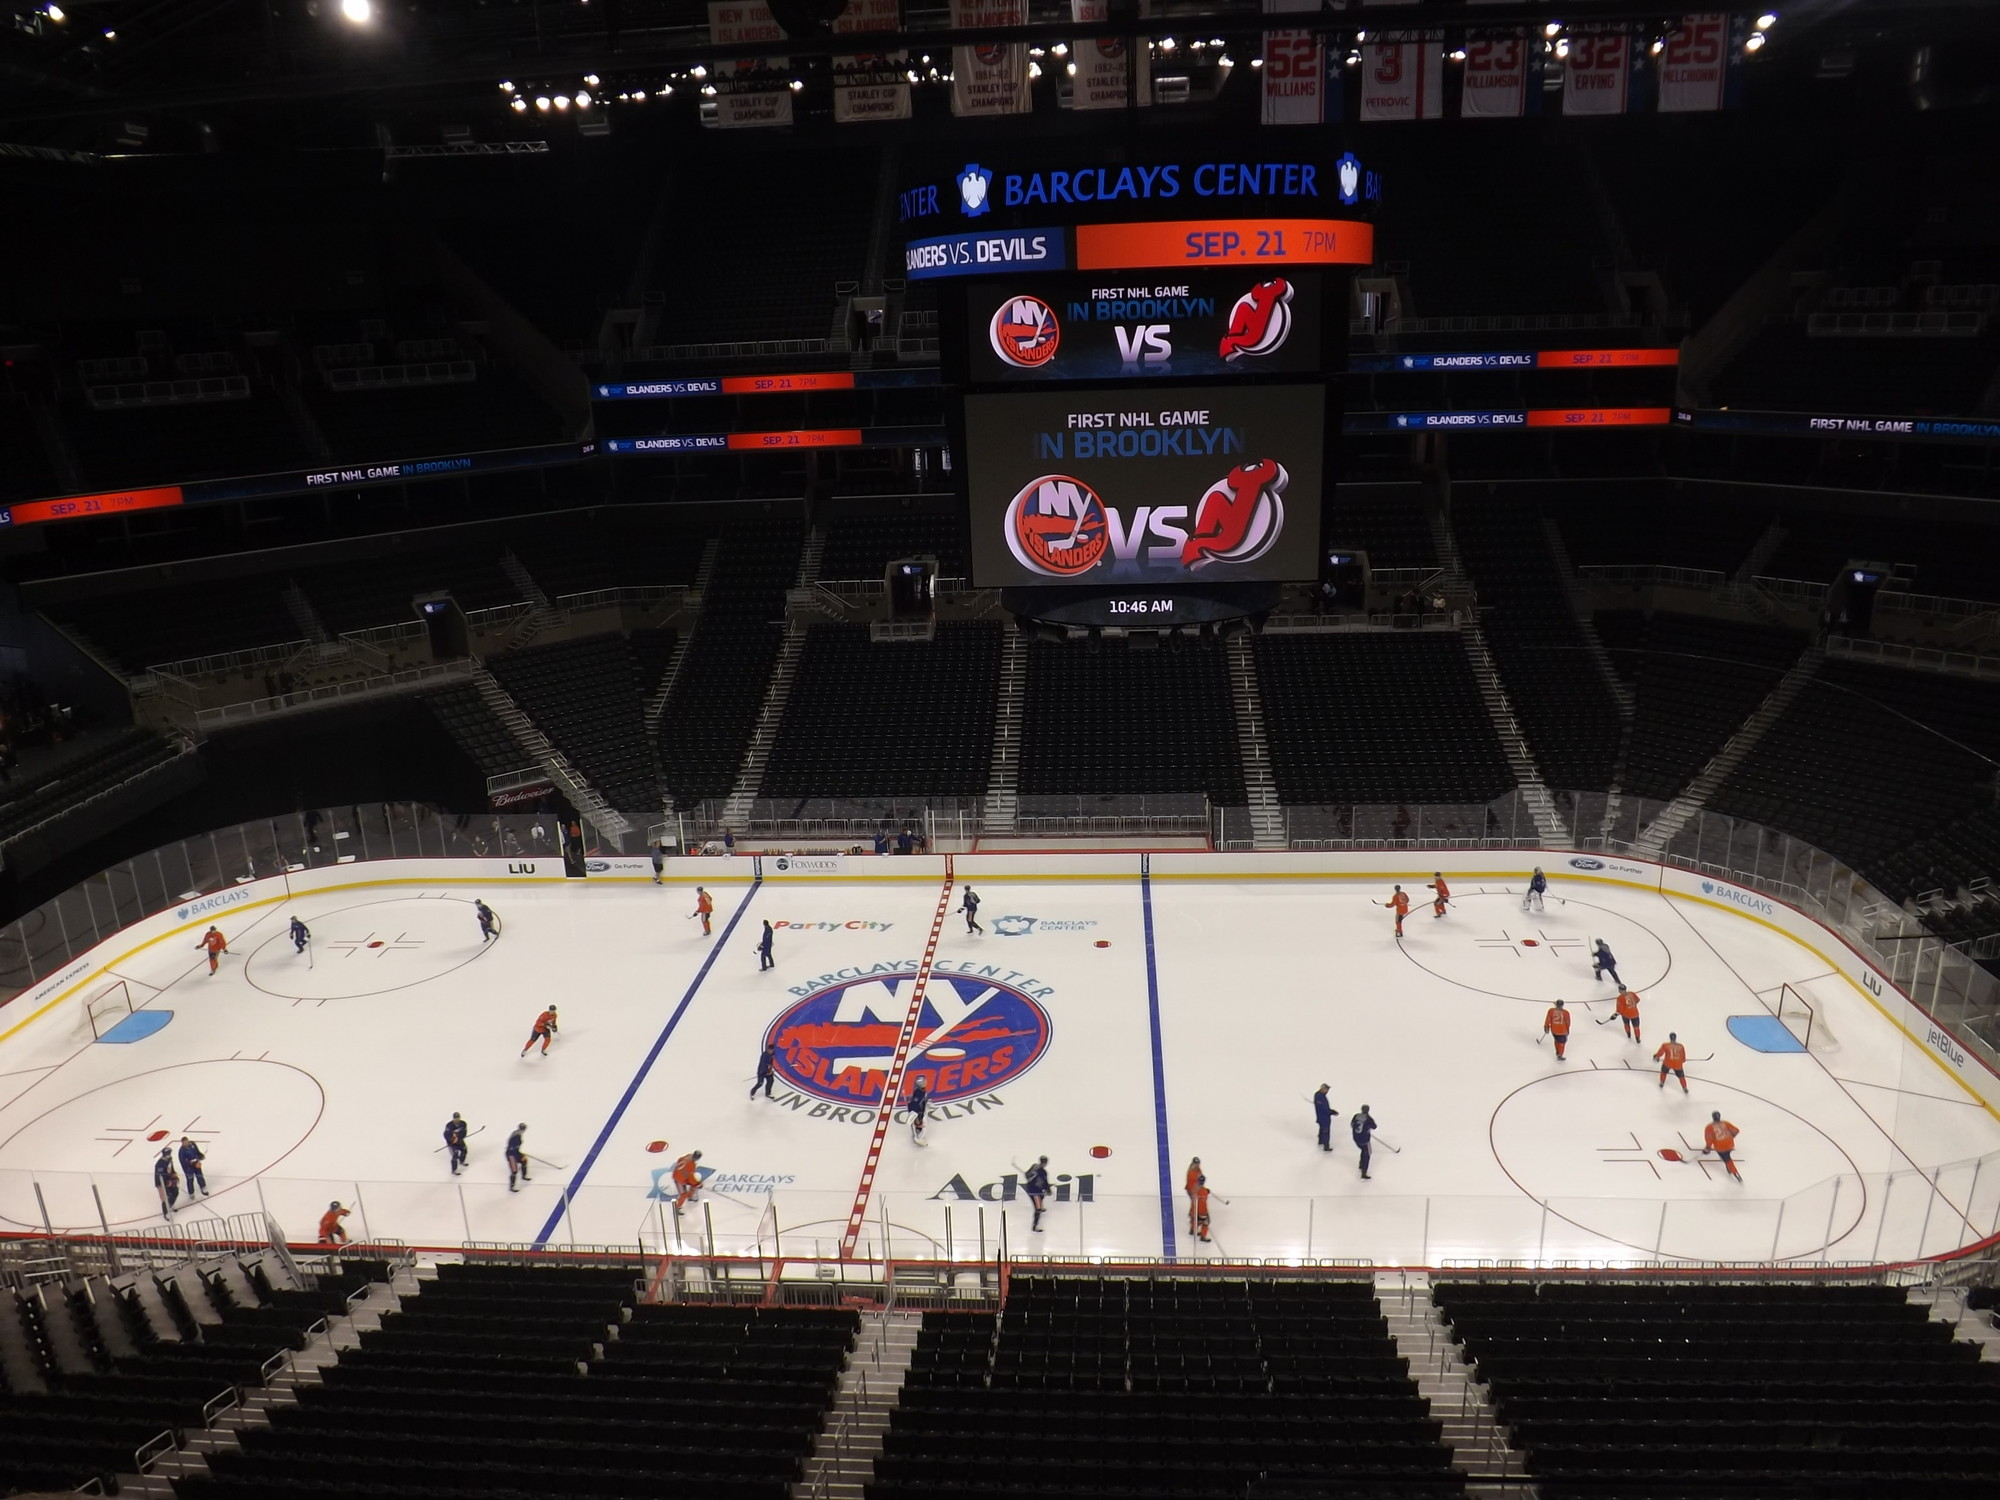 The New York Islanders opened training camp on Sept. 12 in the Barclays Center in Brooklyn. The team is moving into the arena in 2015.